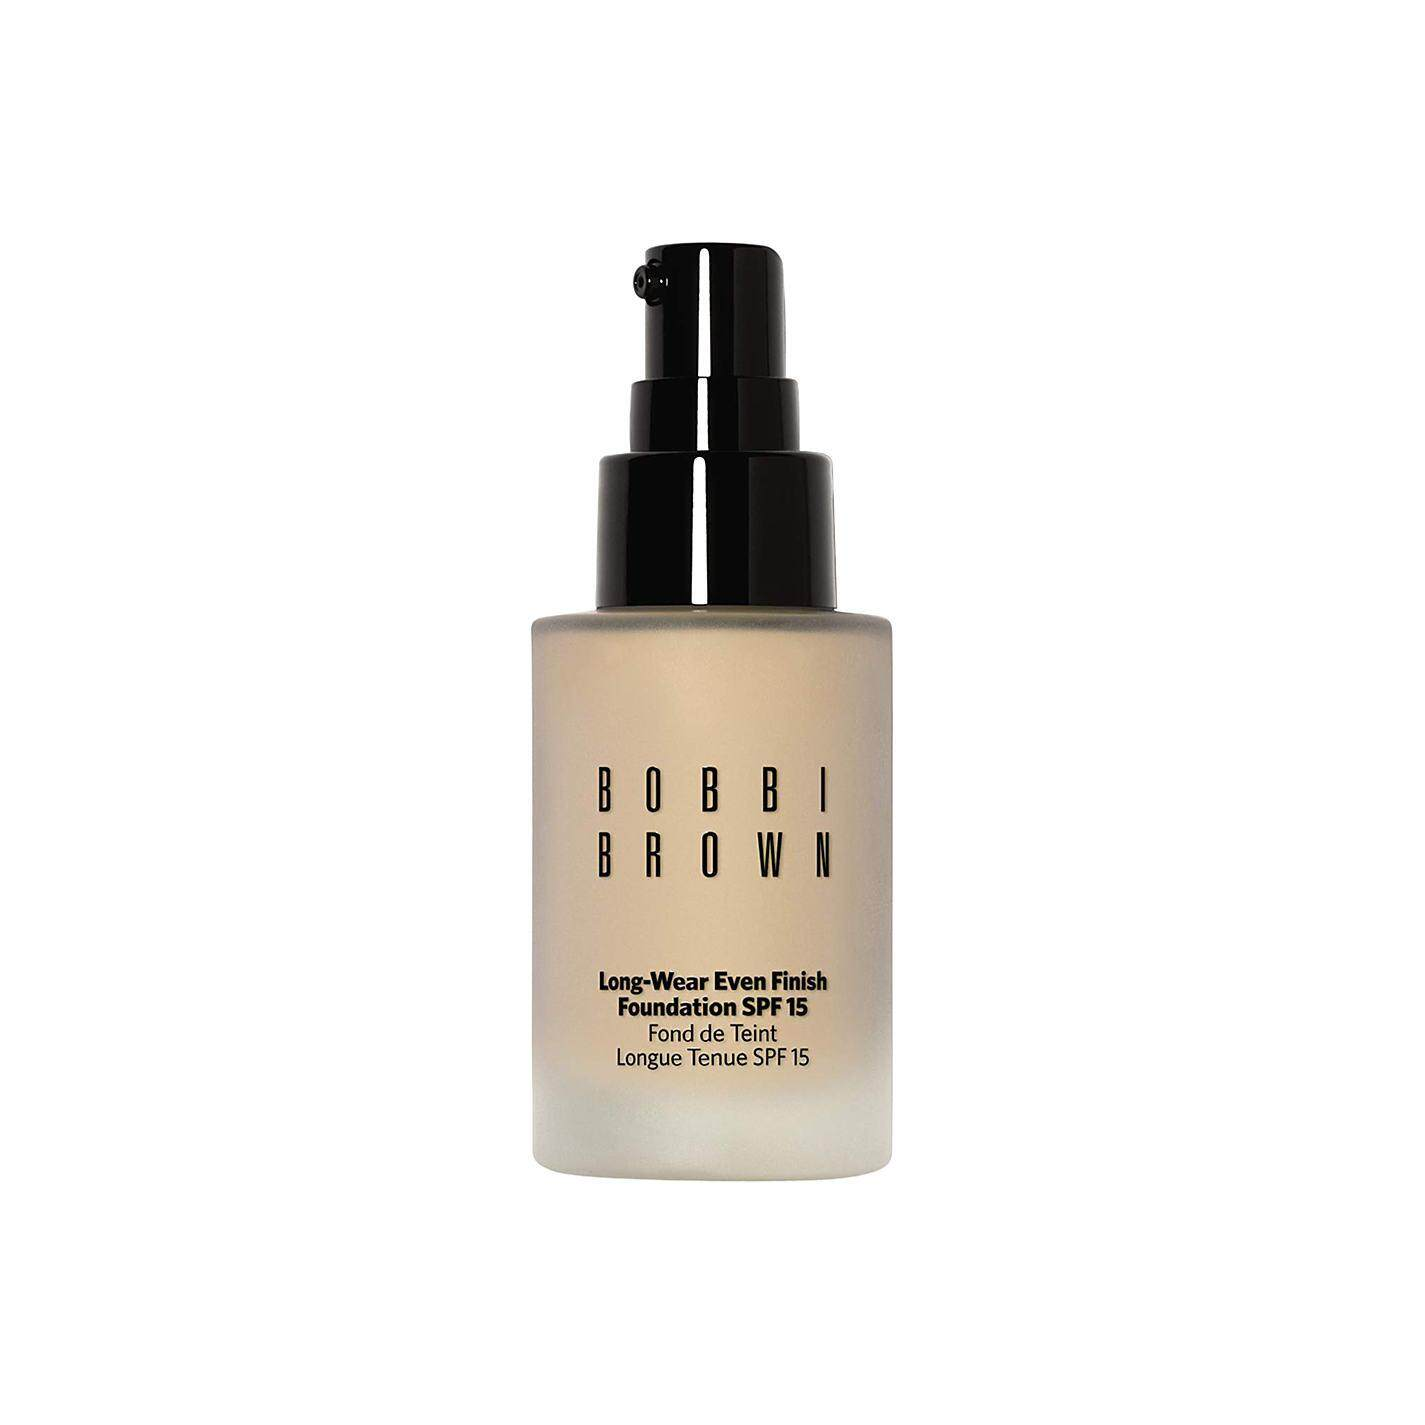 Bobbi Brown Long Wear Even Finish Foundation 03 Beige.